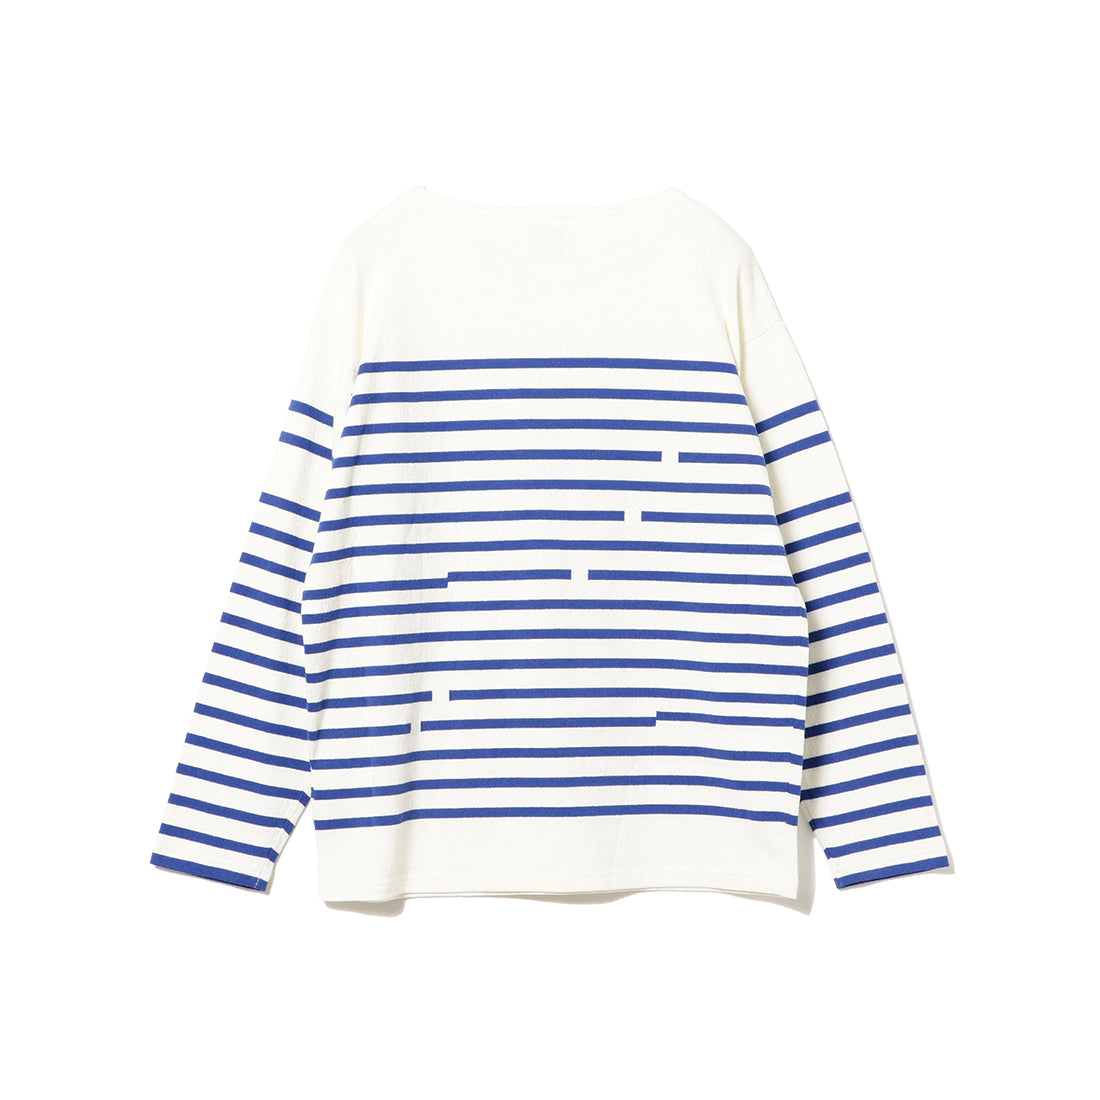 Lesley Disrupted Stripe Shirt